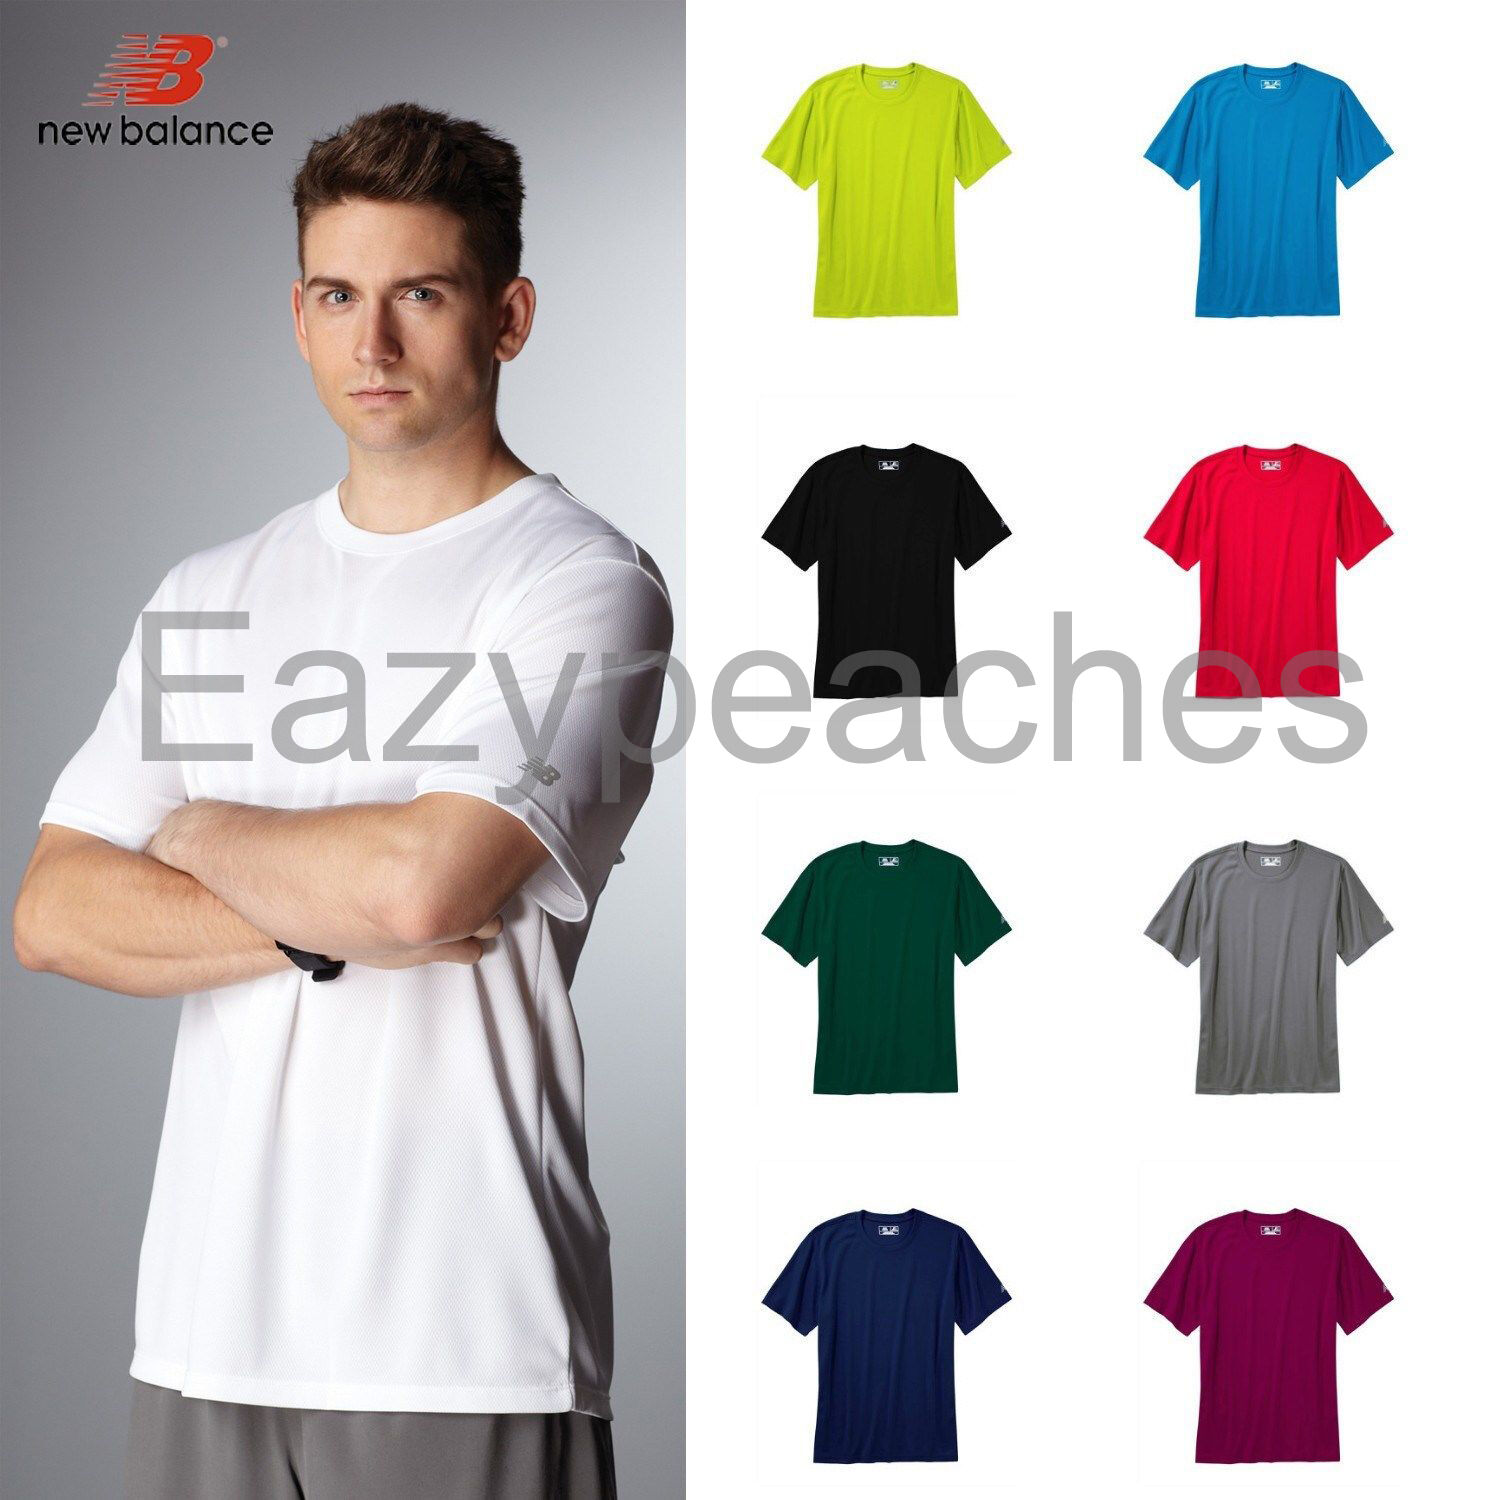 3436129f9c53a New Balance Mens S-3XL Short Sleeve Gym T-shirt dri-fit Workout Tees N7118.  Click to Enlarge